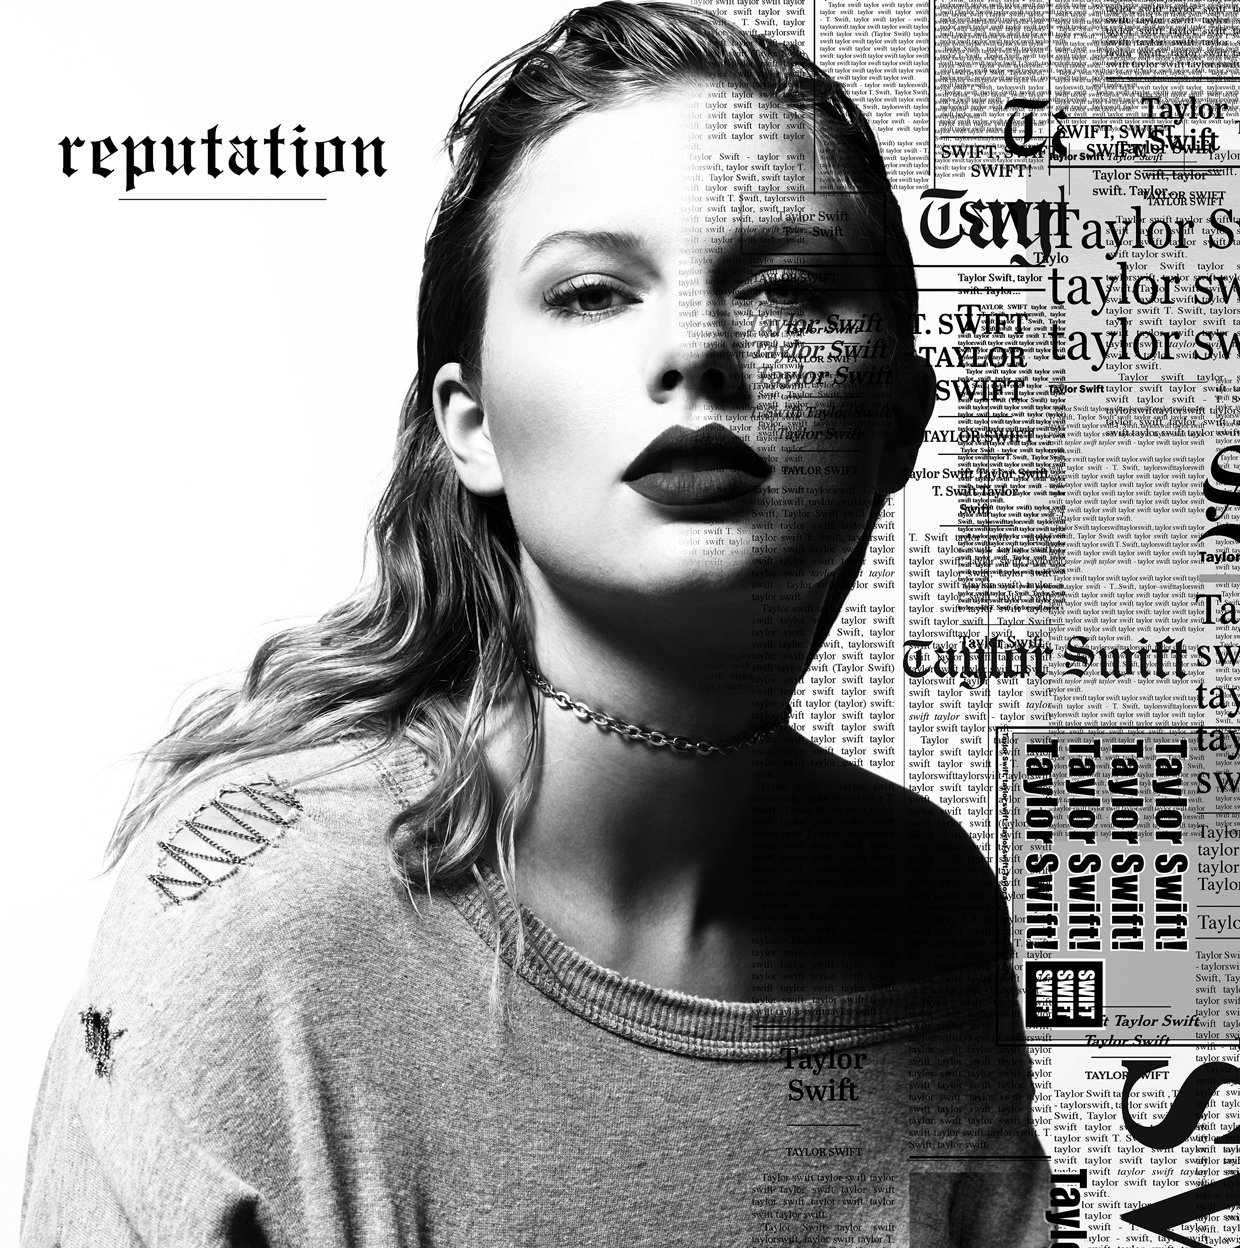 b4ce83fa0 Review: Taylor Swift, Reputation - Slant Magazine